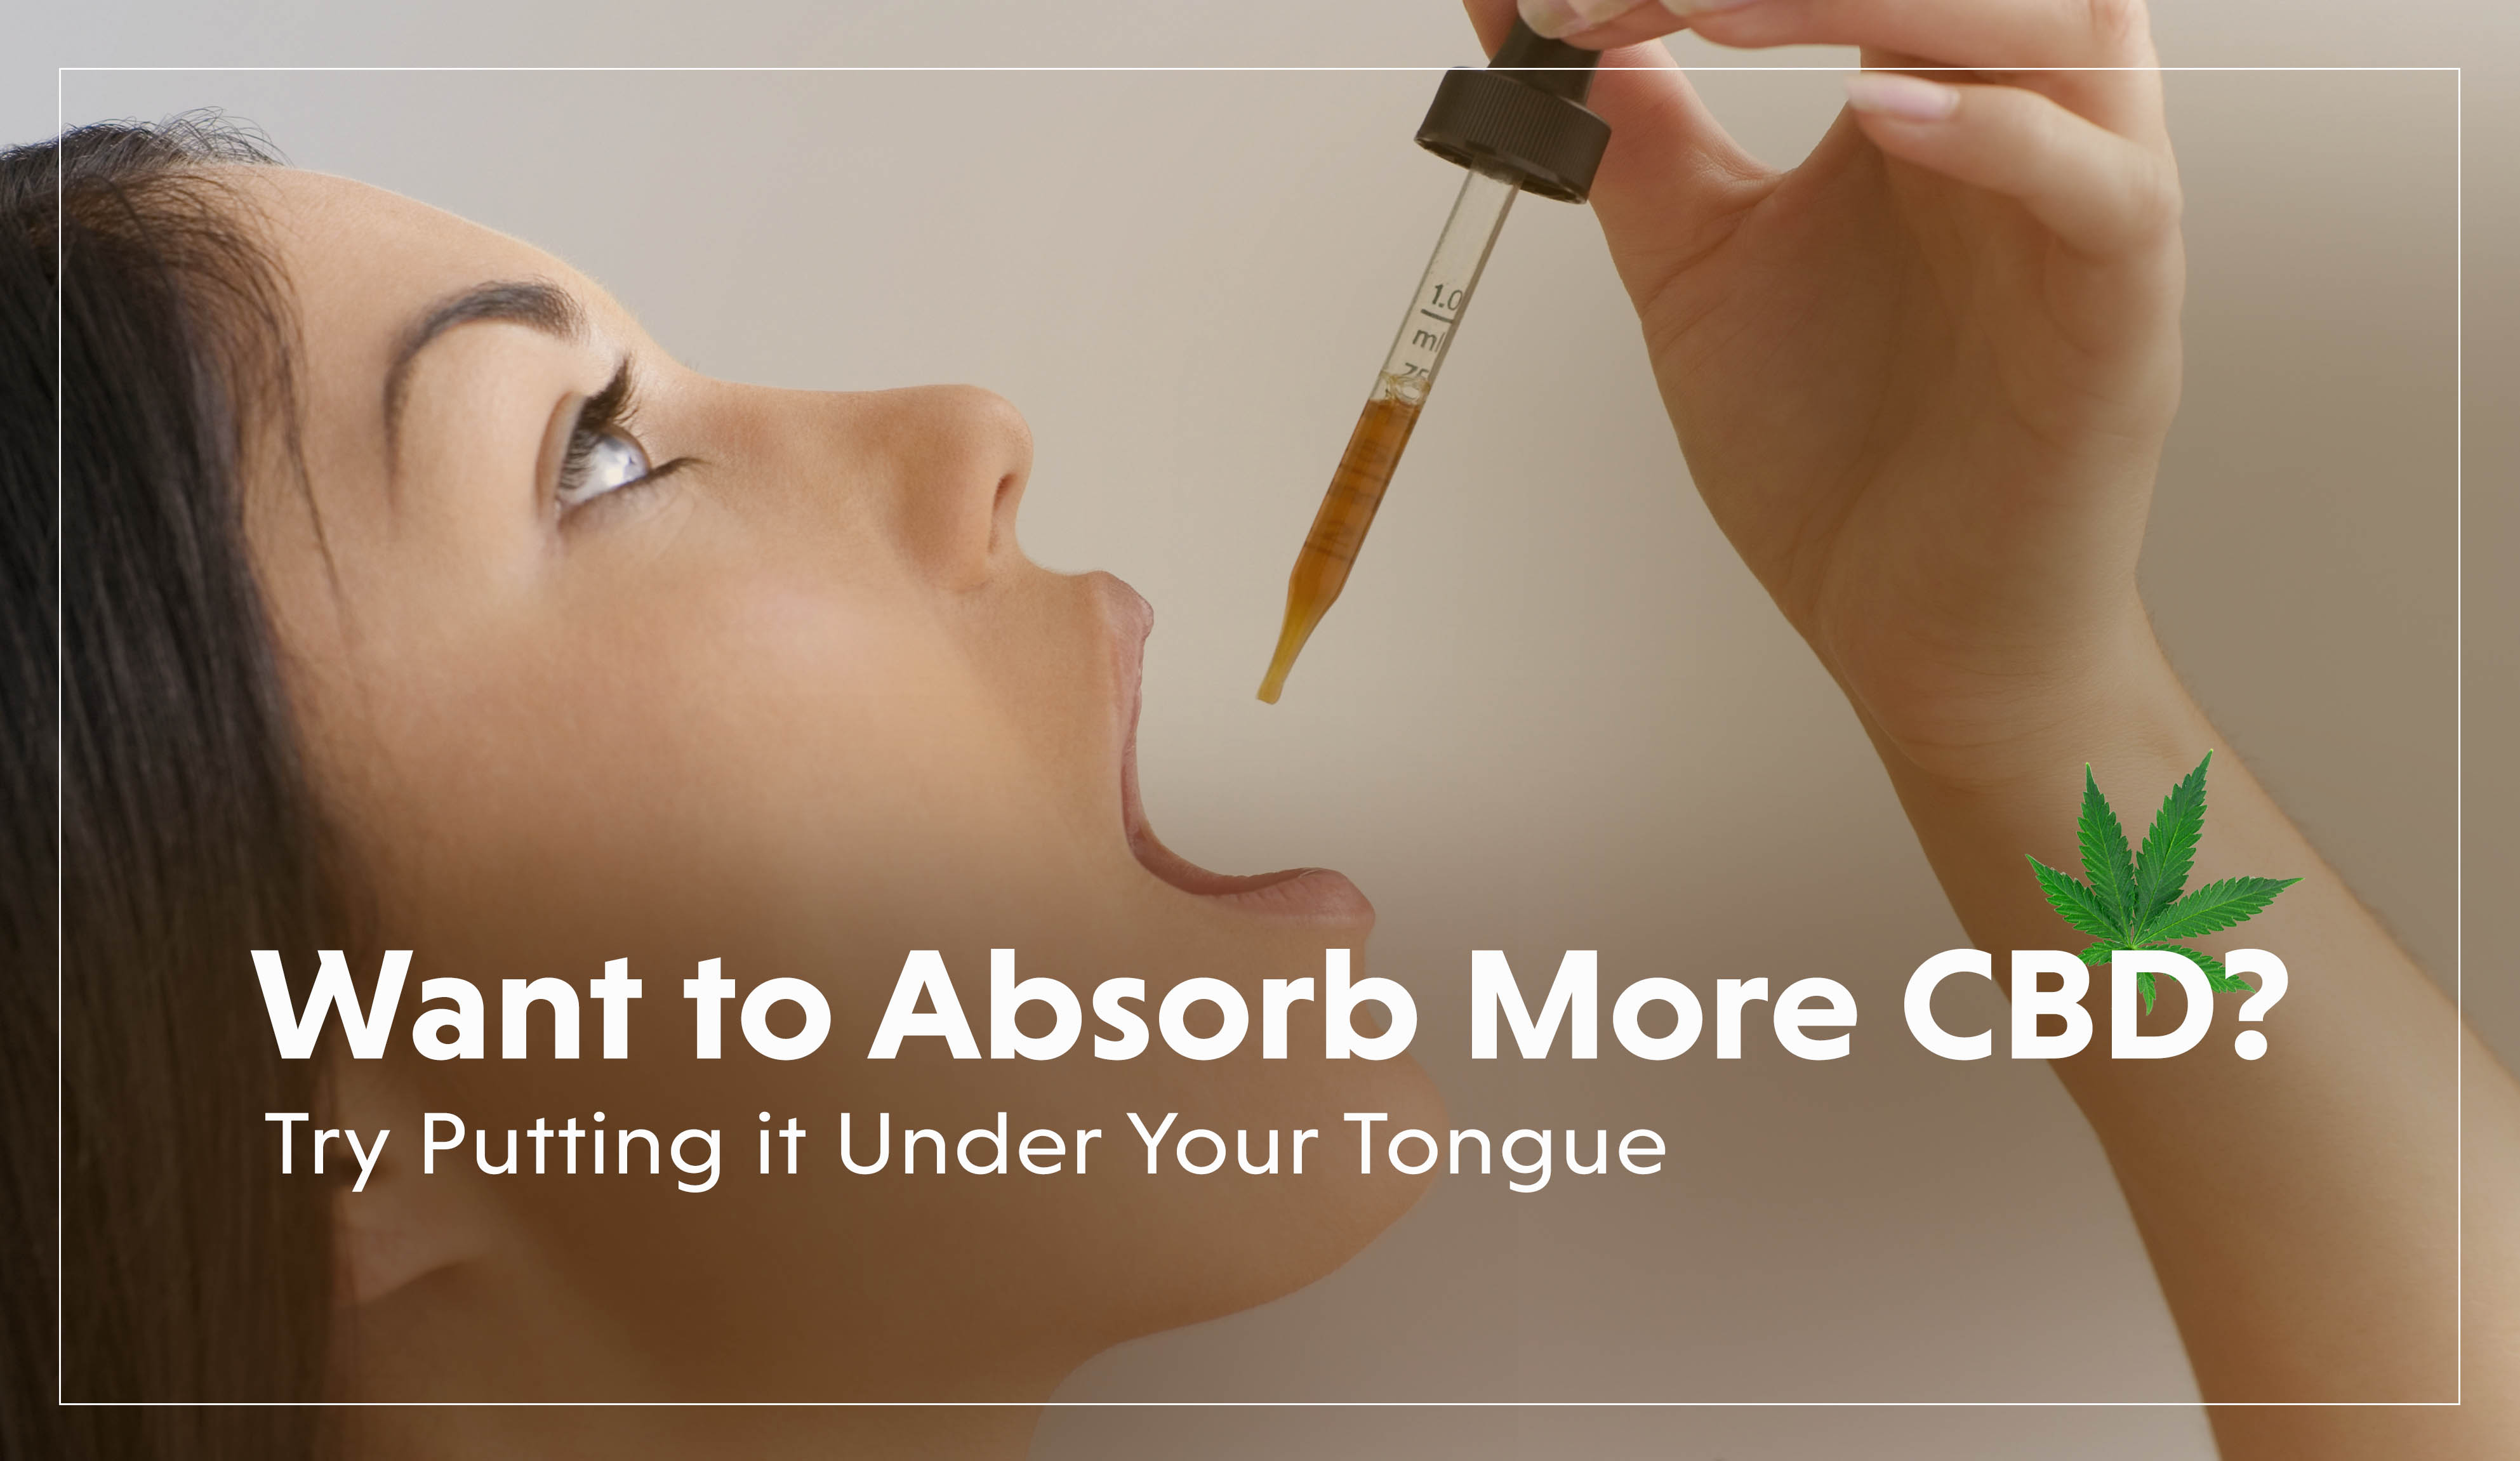 How to Absorb More CBD